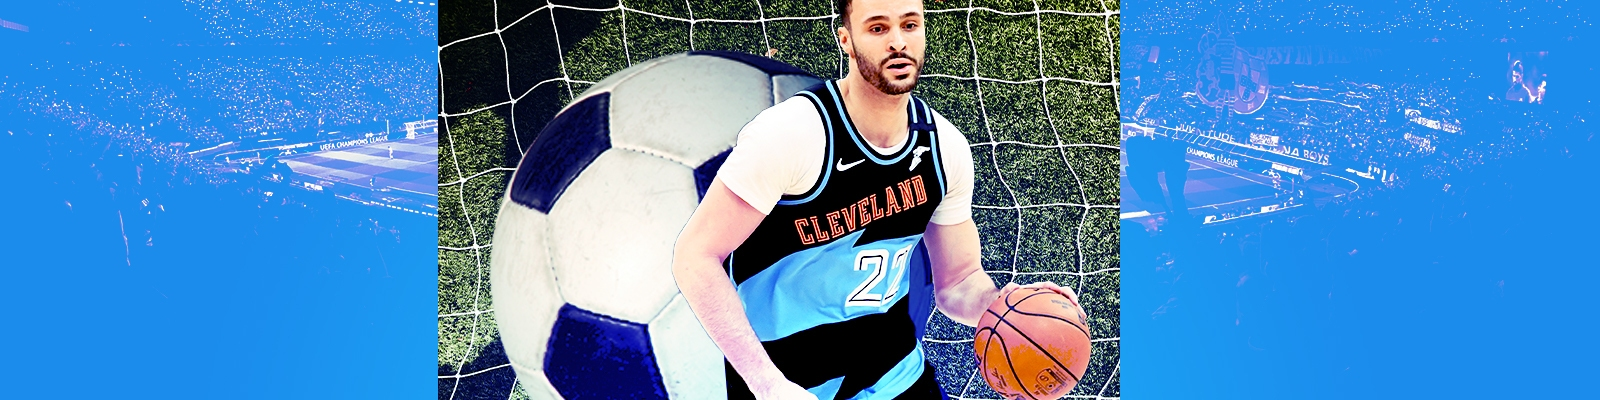 Larry Nance Wants More Of America's Best Young Athletes To Play Soccer